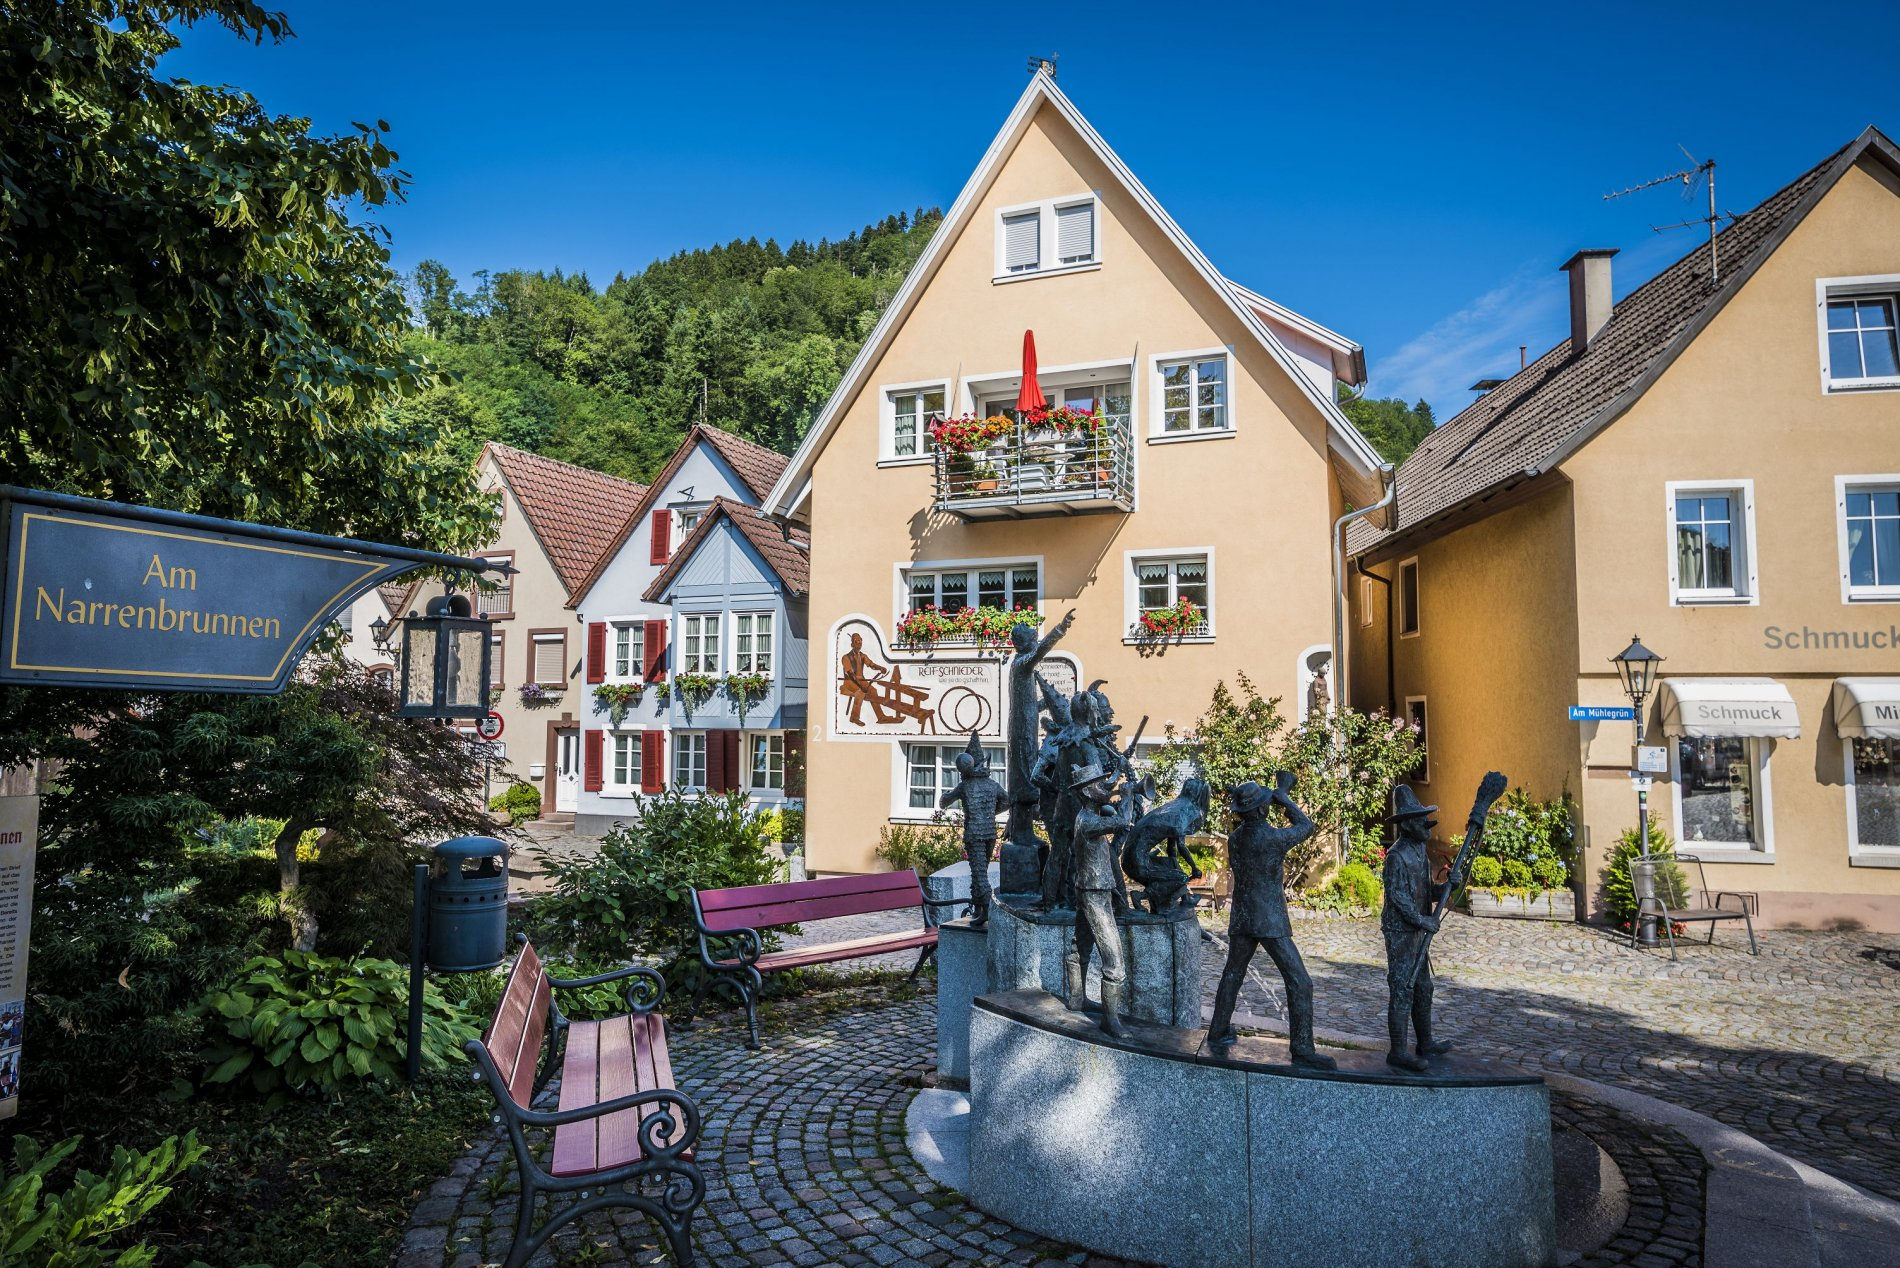 Narrenbrunnen Sicht vom Gassensteg